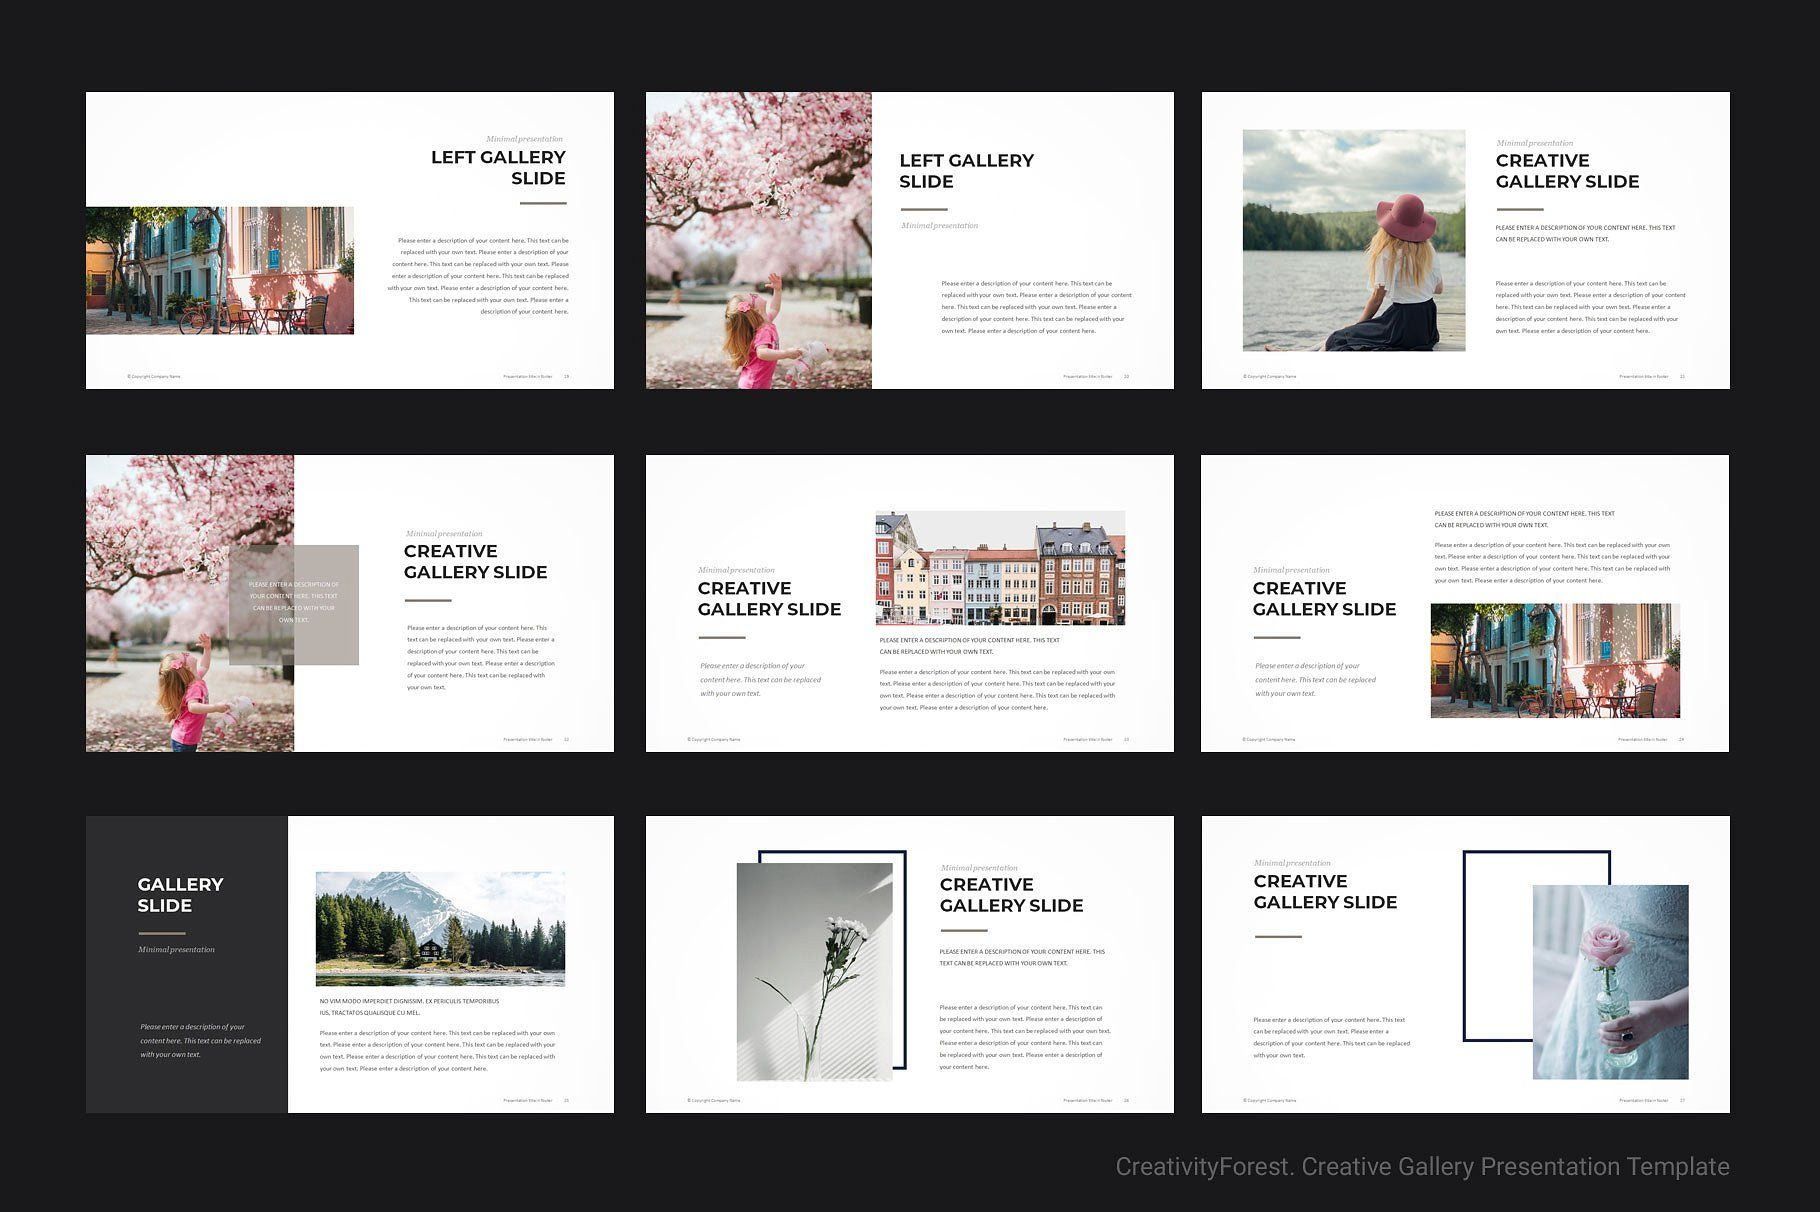 Creative Gallery PowerPoint Template #project#creative#ideas